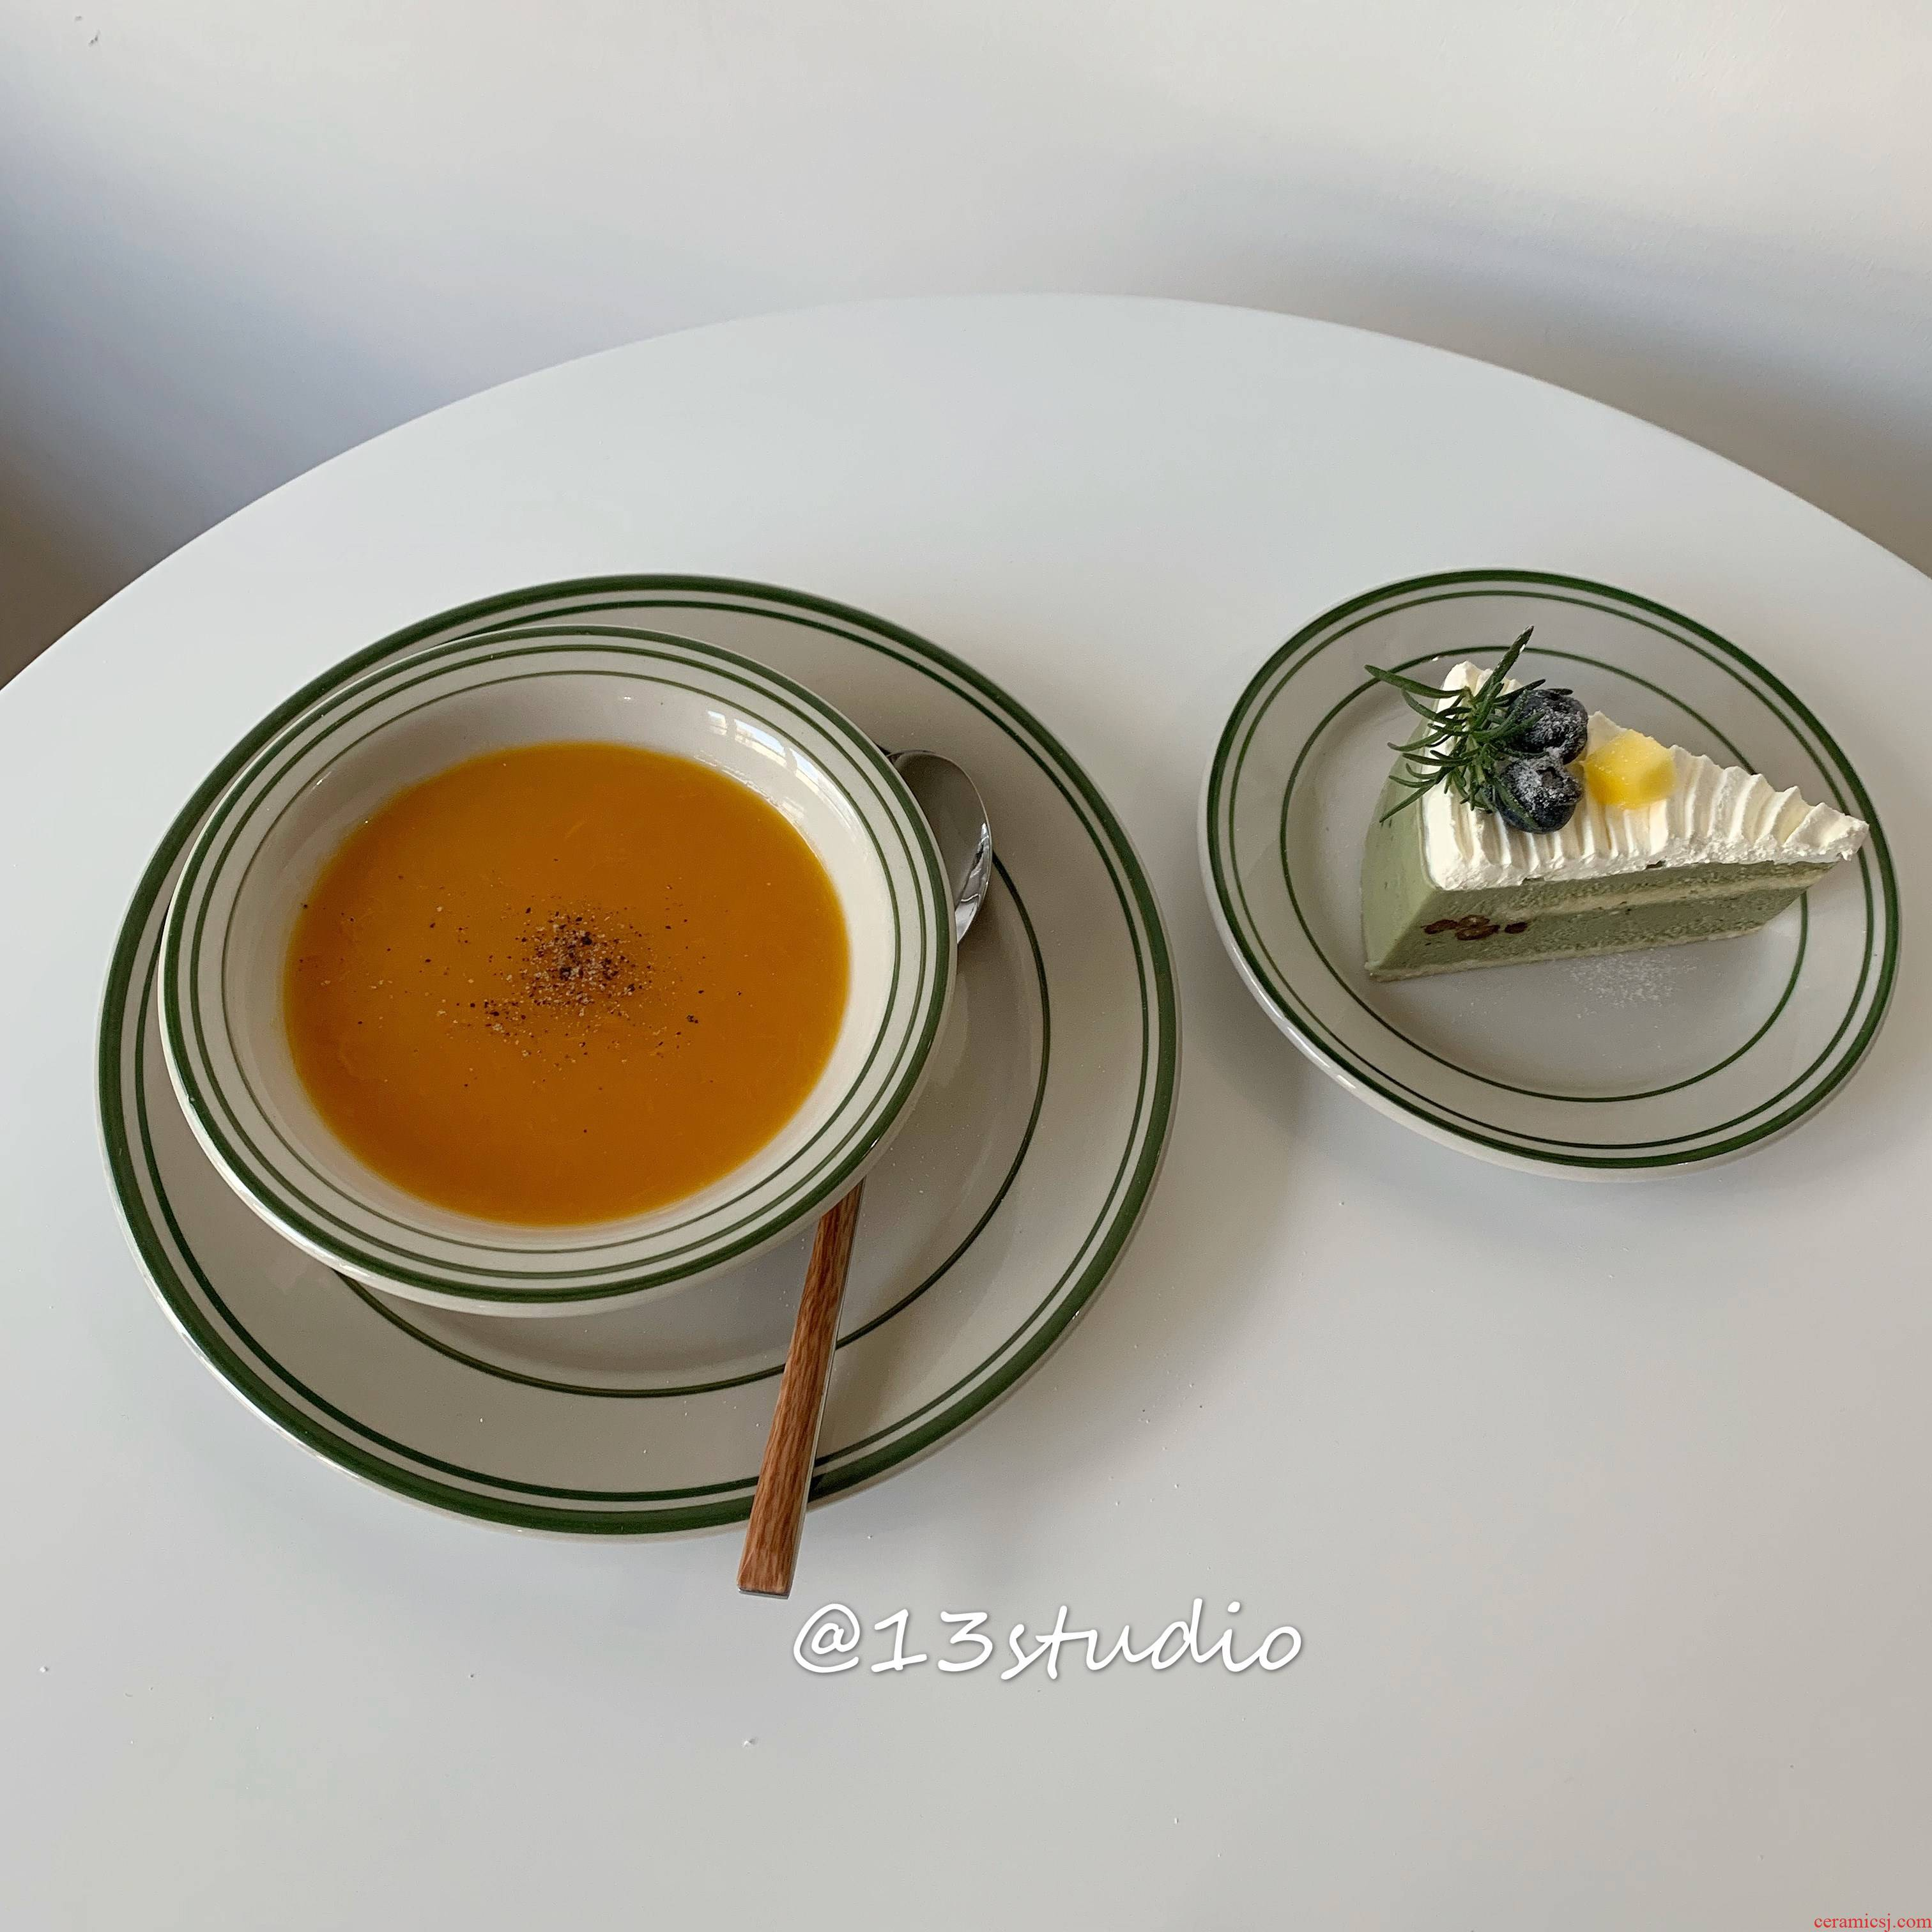 Ins retro line ceramic disc cake plate western food dish of green line one eat breakfast salad pasta dish suits for